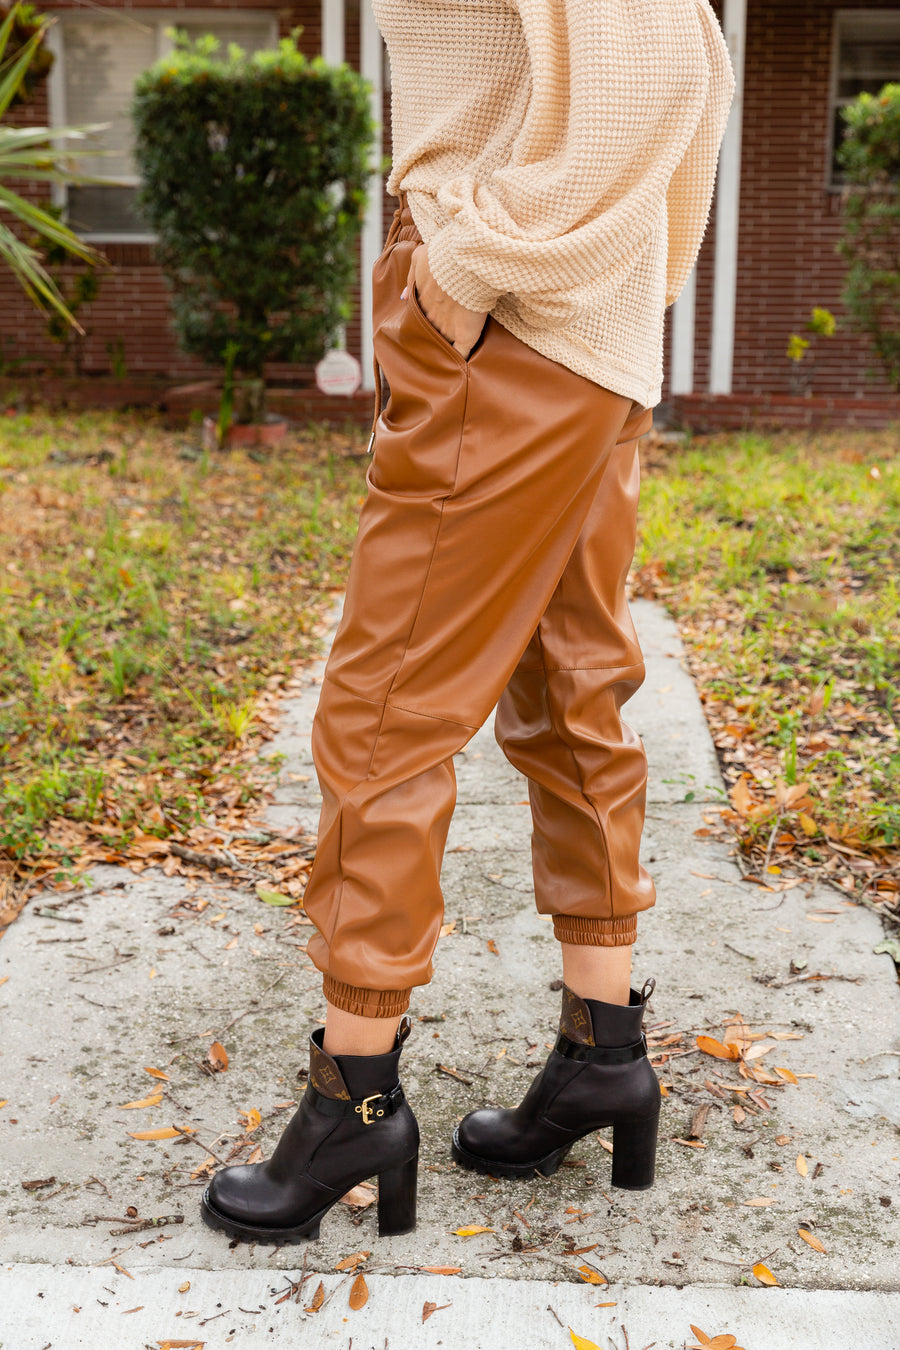 These pleather joggers have an elastic waistband with a drawstring tie before leading into relaxed-fit pants with side pockets and tapering into skinny pant legs with an elastic ankle cuff.